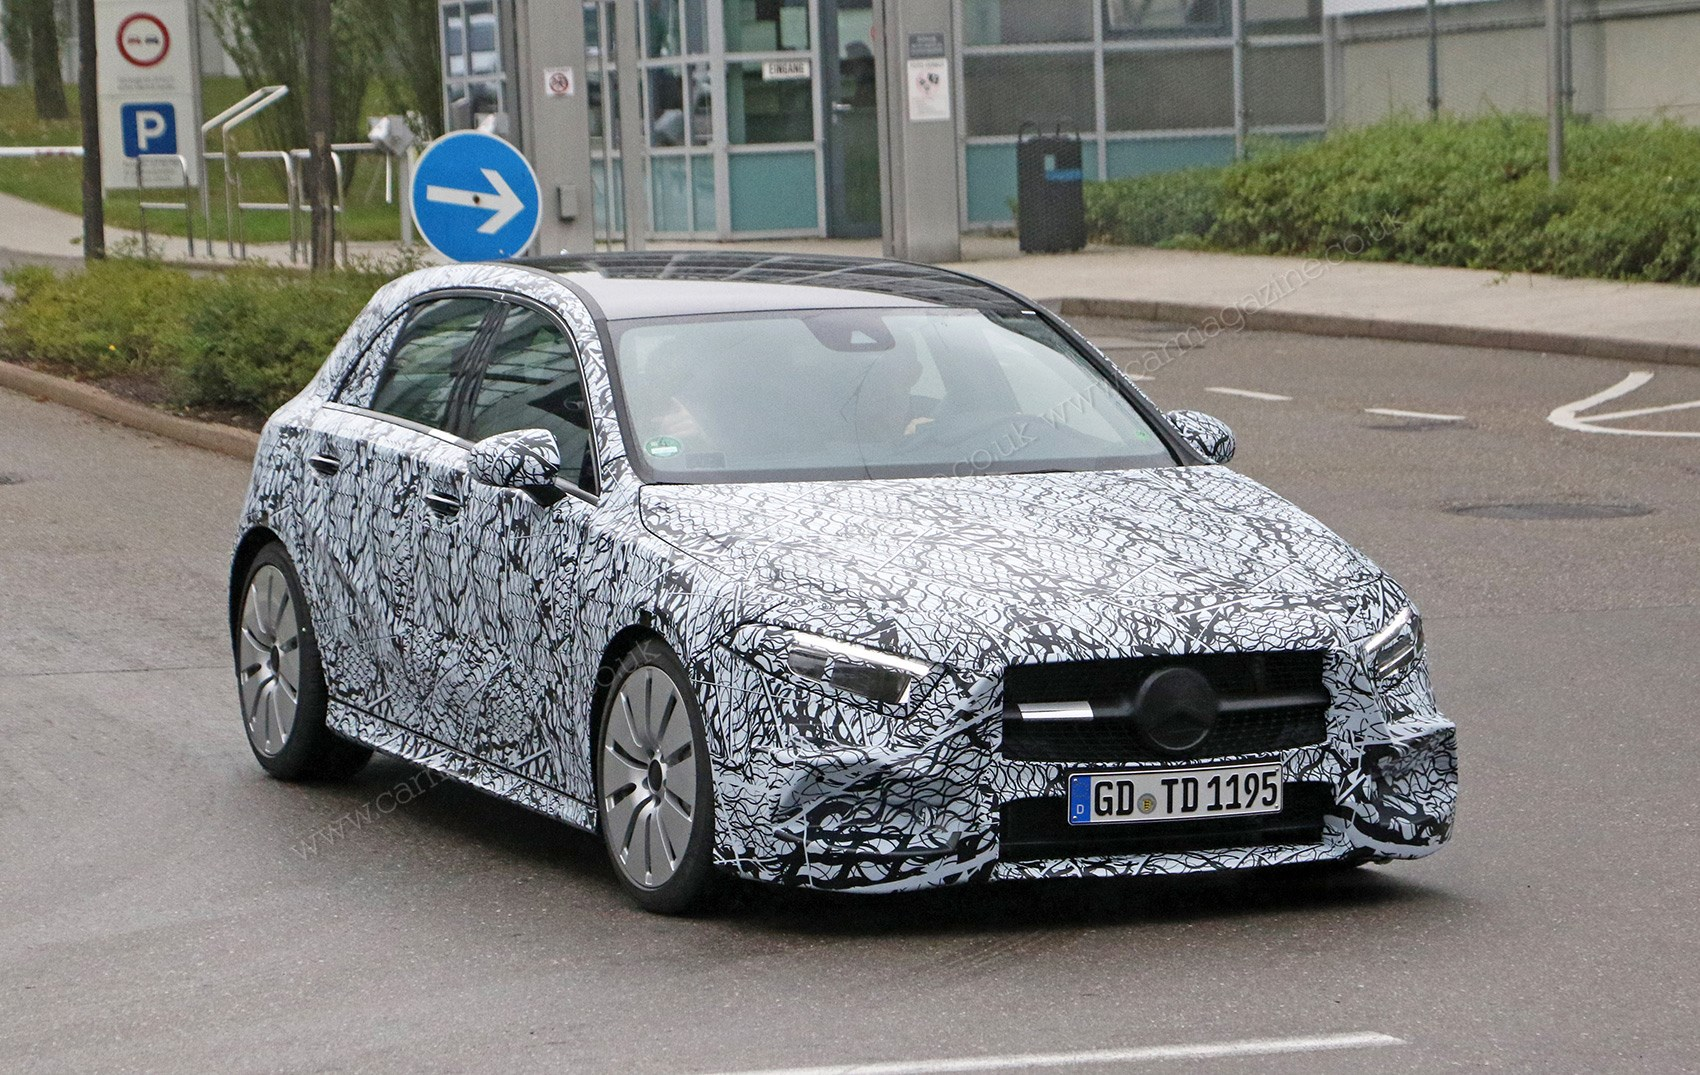 Mercedes Amg A35 Hot Hatch Spy Photos And Specs By Car